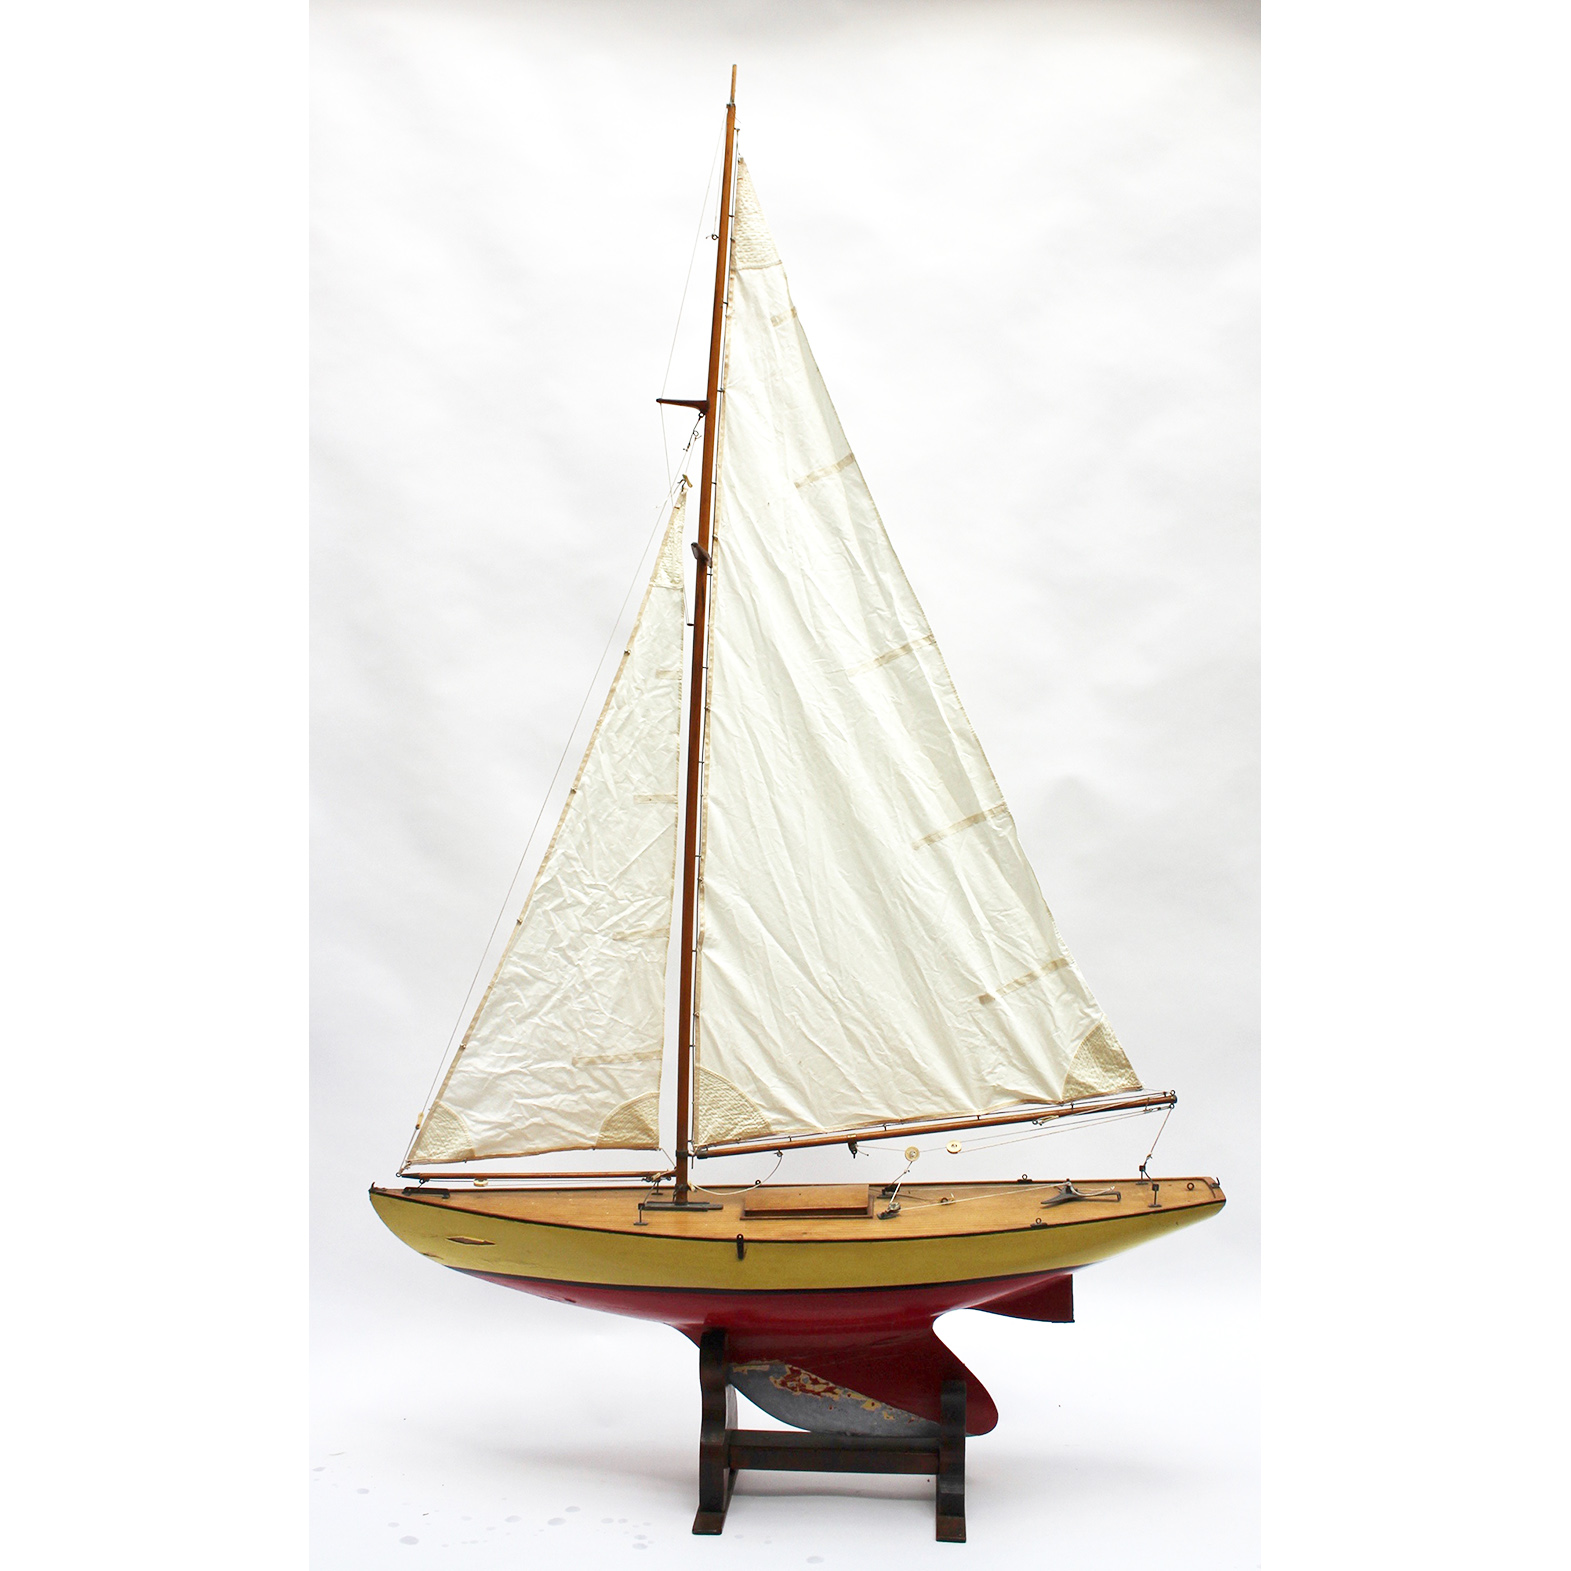 36 inch restricted class model pond yacht